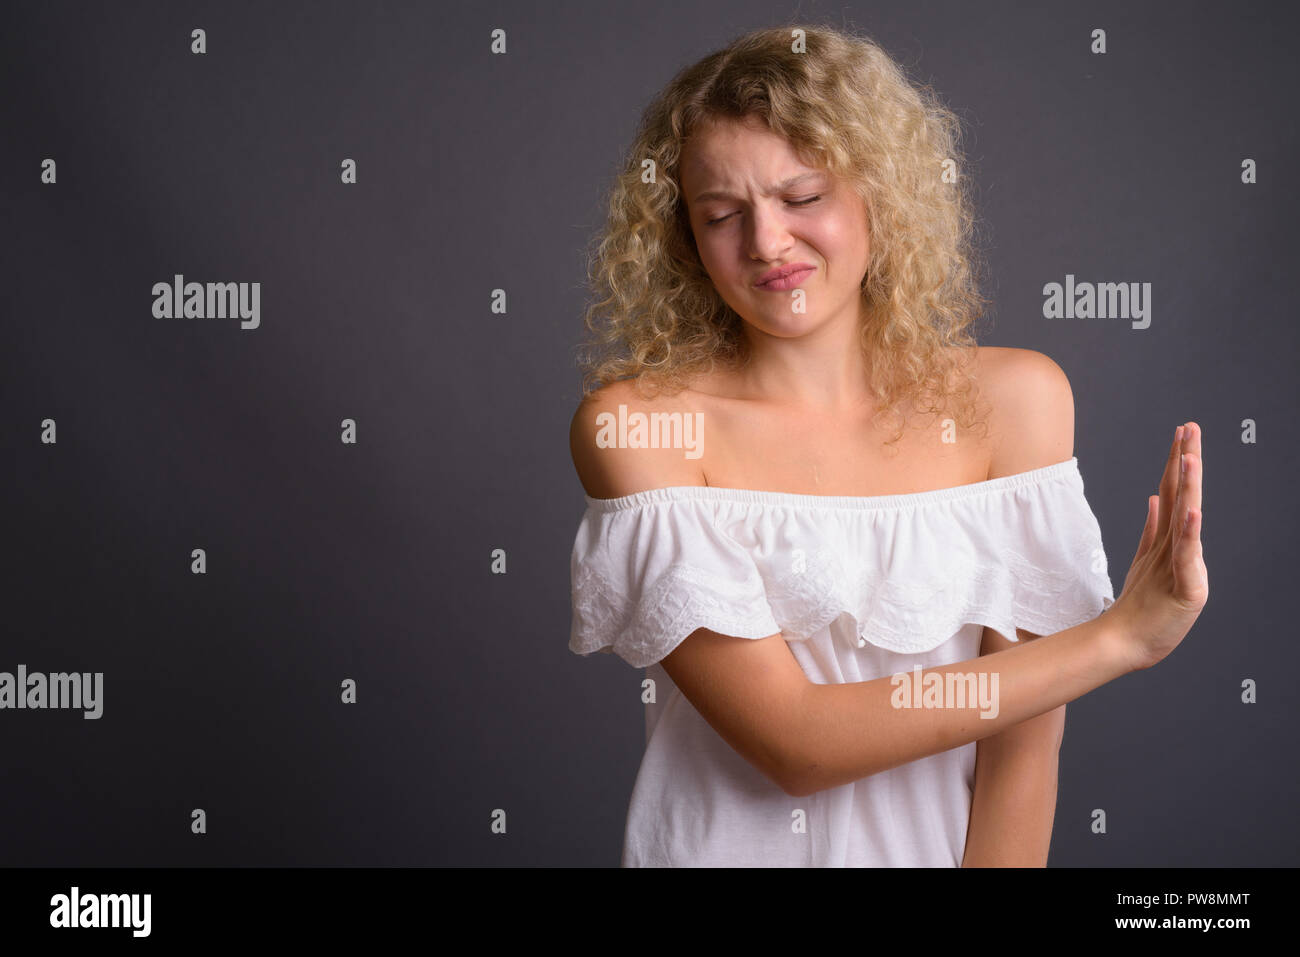 Young beautiful woman with blond curly hair against gray backgro - Stock Image